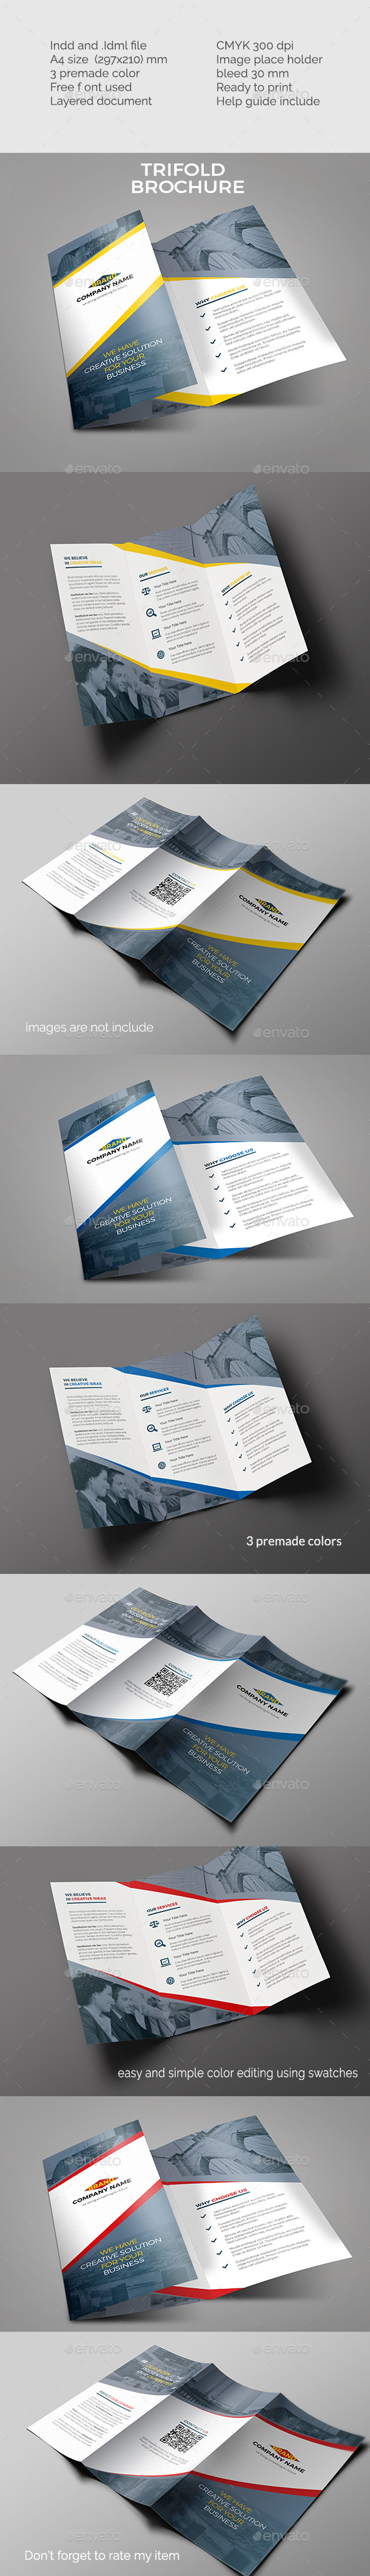 Simple Trifold Brochure - Corporate Brochures